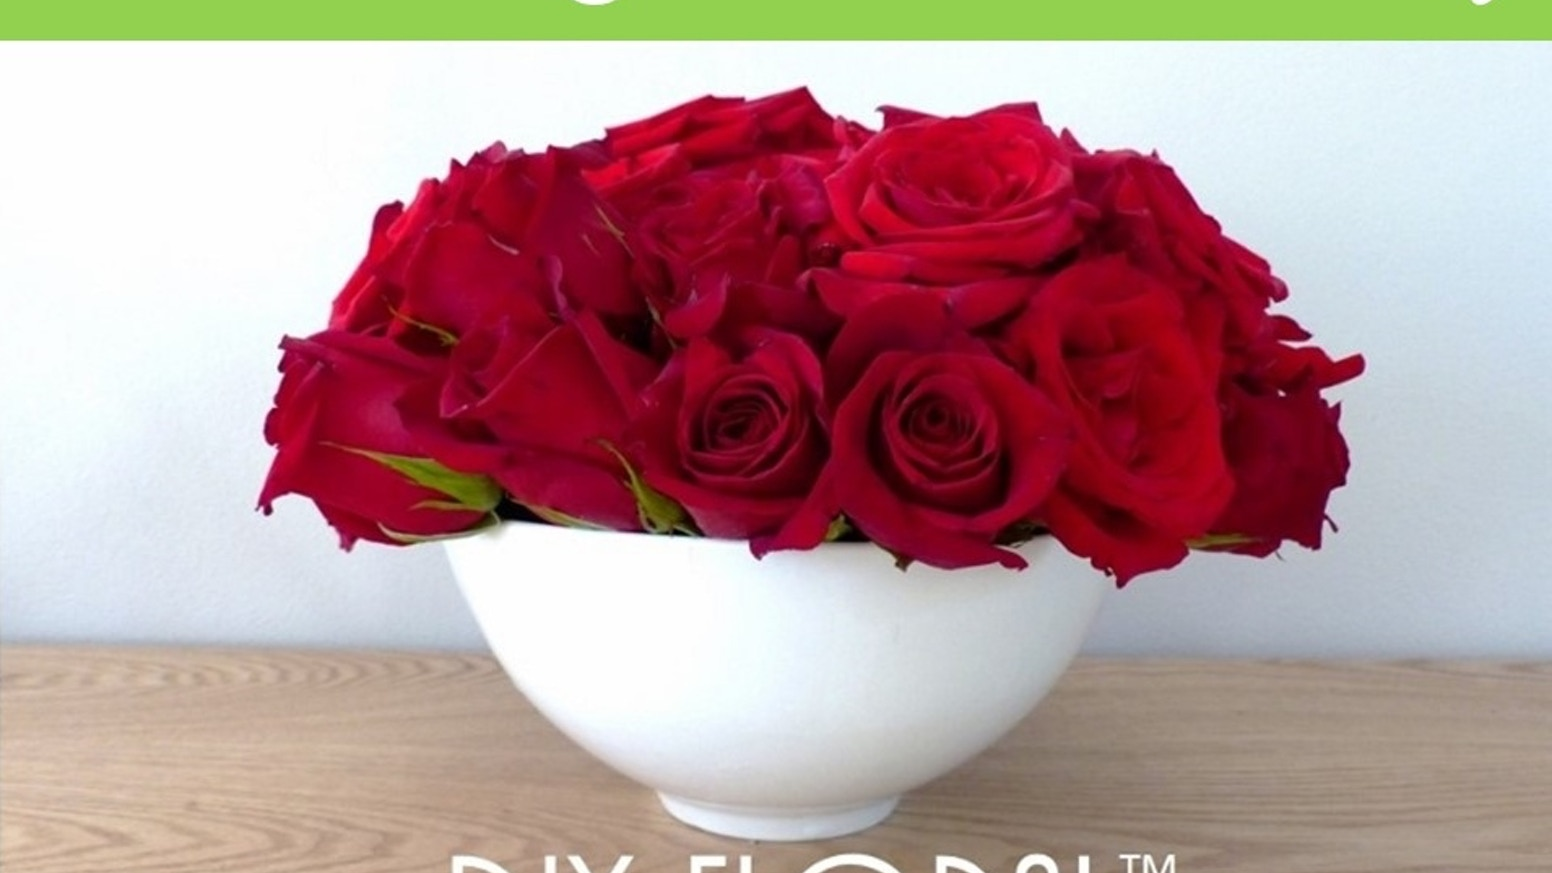 Diy floral anyone can create amazing flower arrangements by adam diy floral anyone can create amazing flower arrangements izmirmasajfo